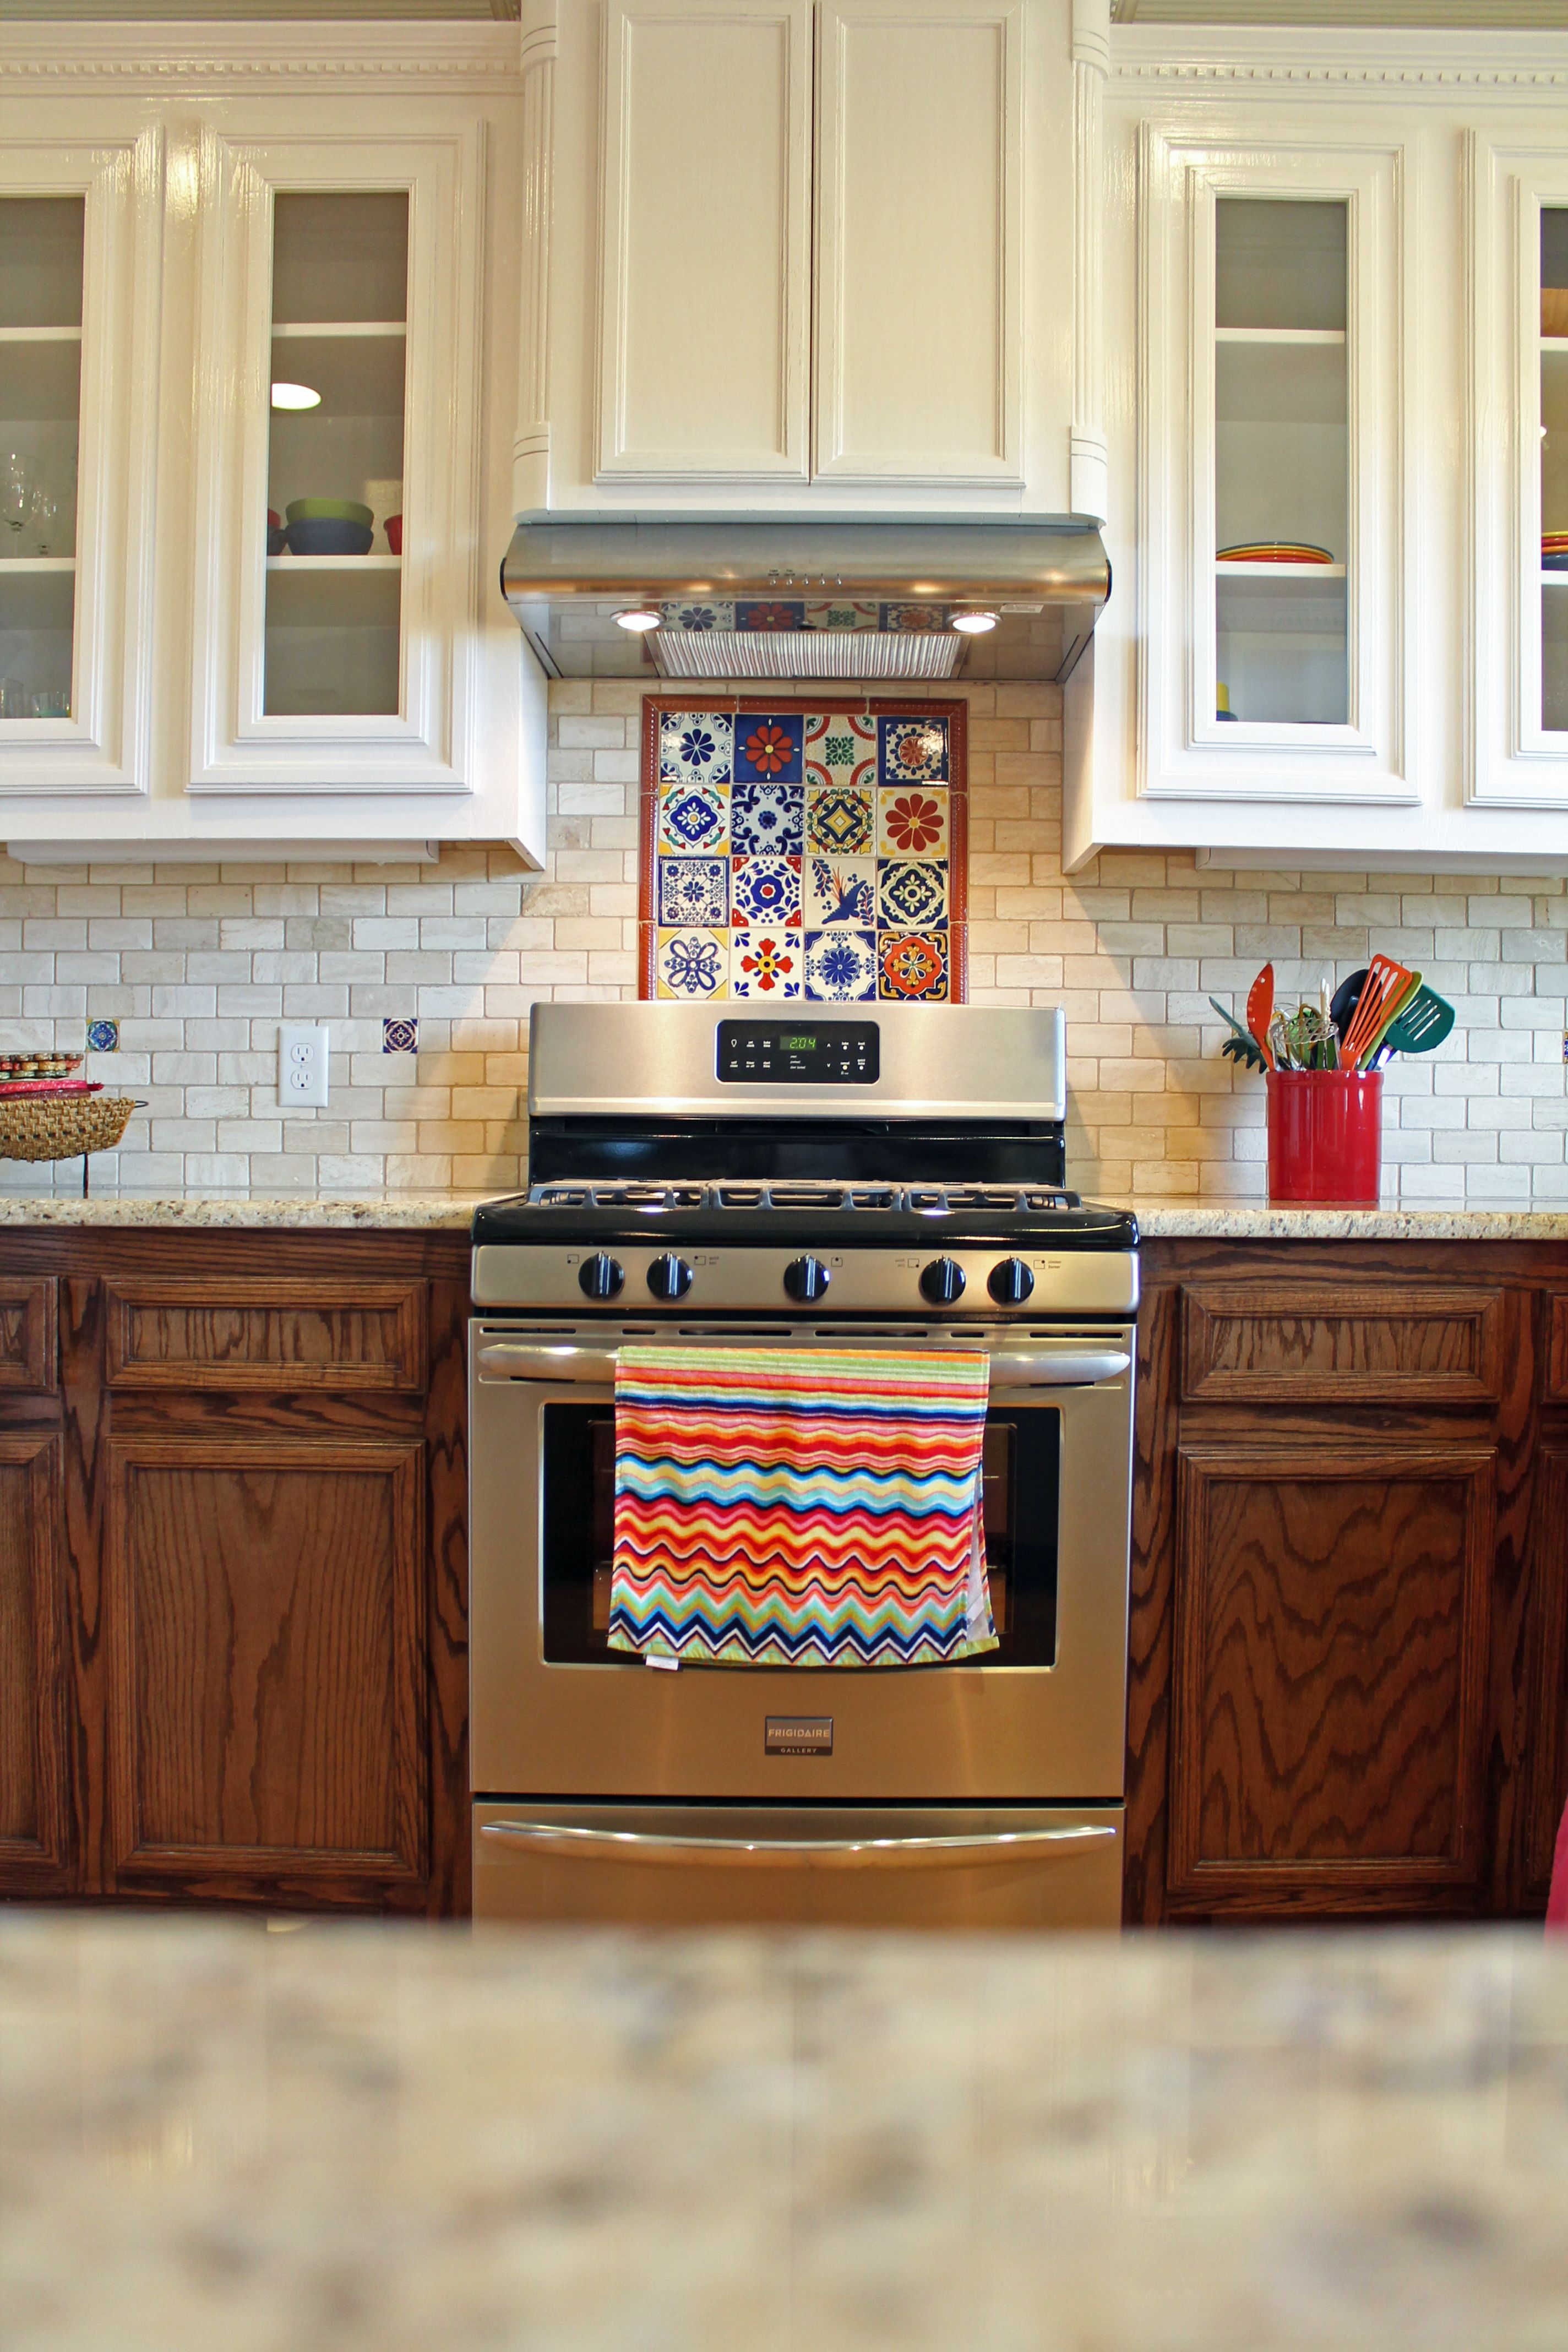 Mexican Backsplash Tiles Kitchen And Bath Remodeling Spanish Design With Talavera Tile Travertine